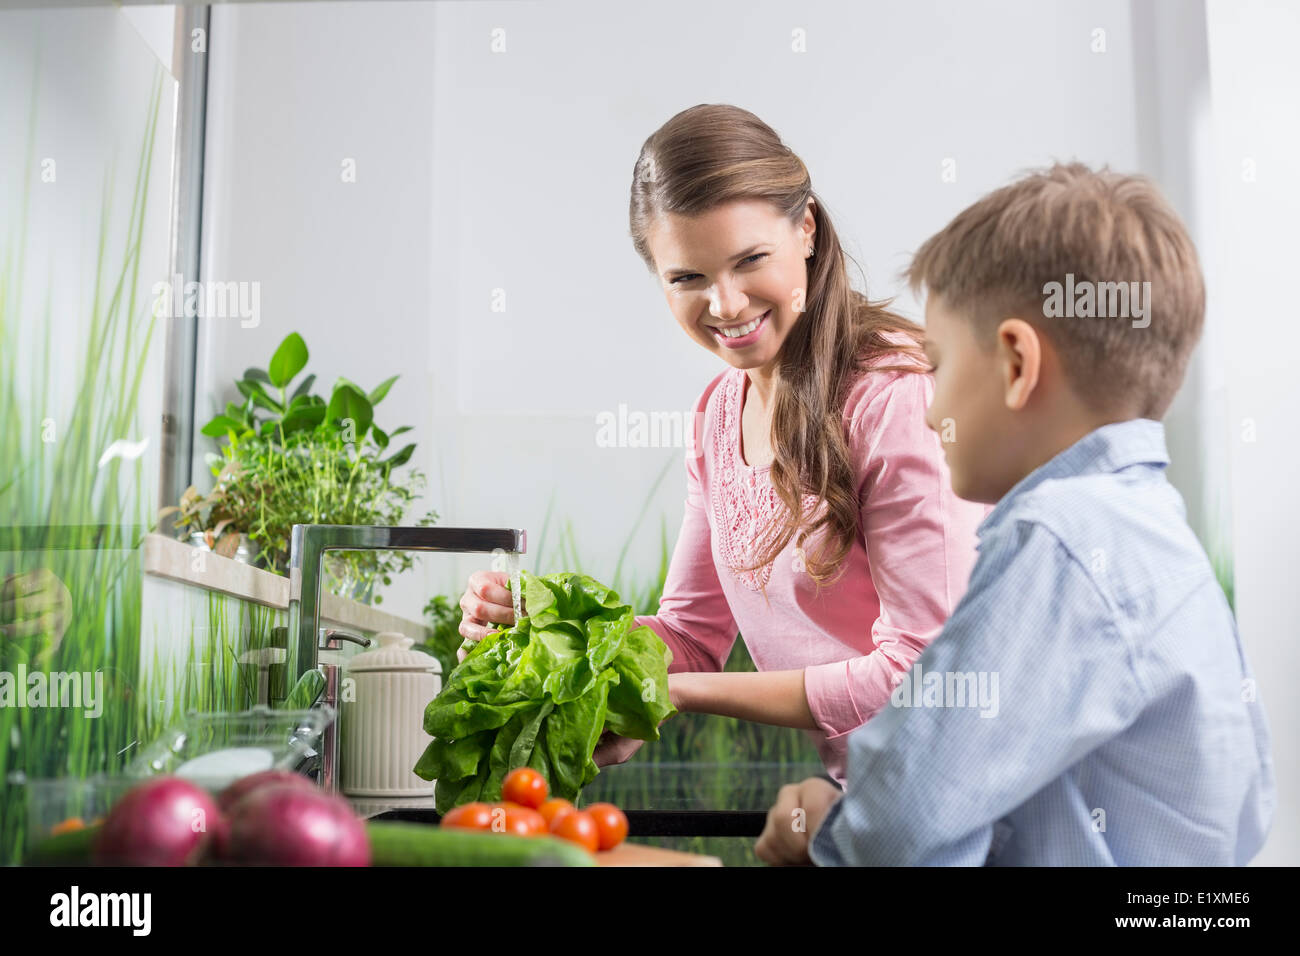 Happy mother and son washing vegetables in kitchen - Stock Image